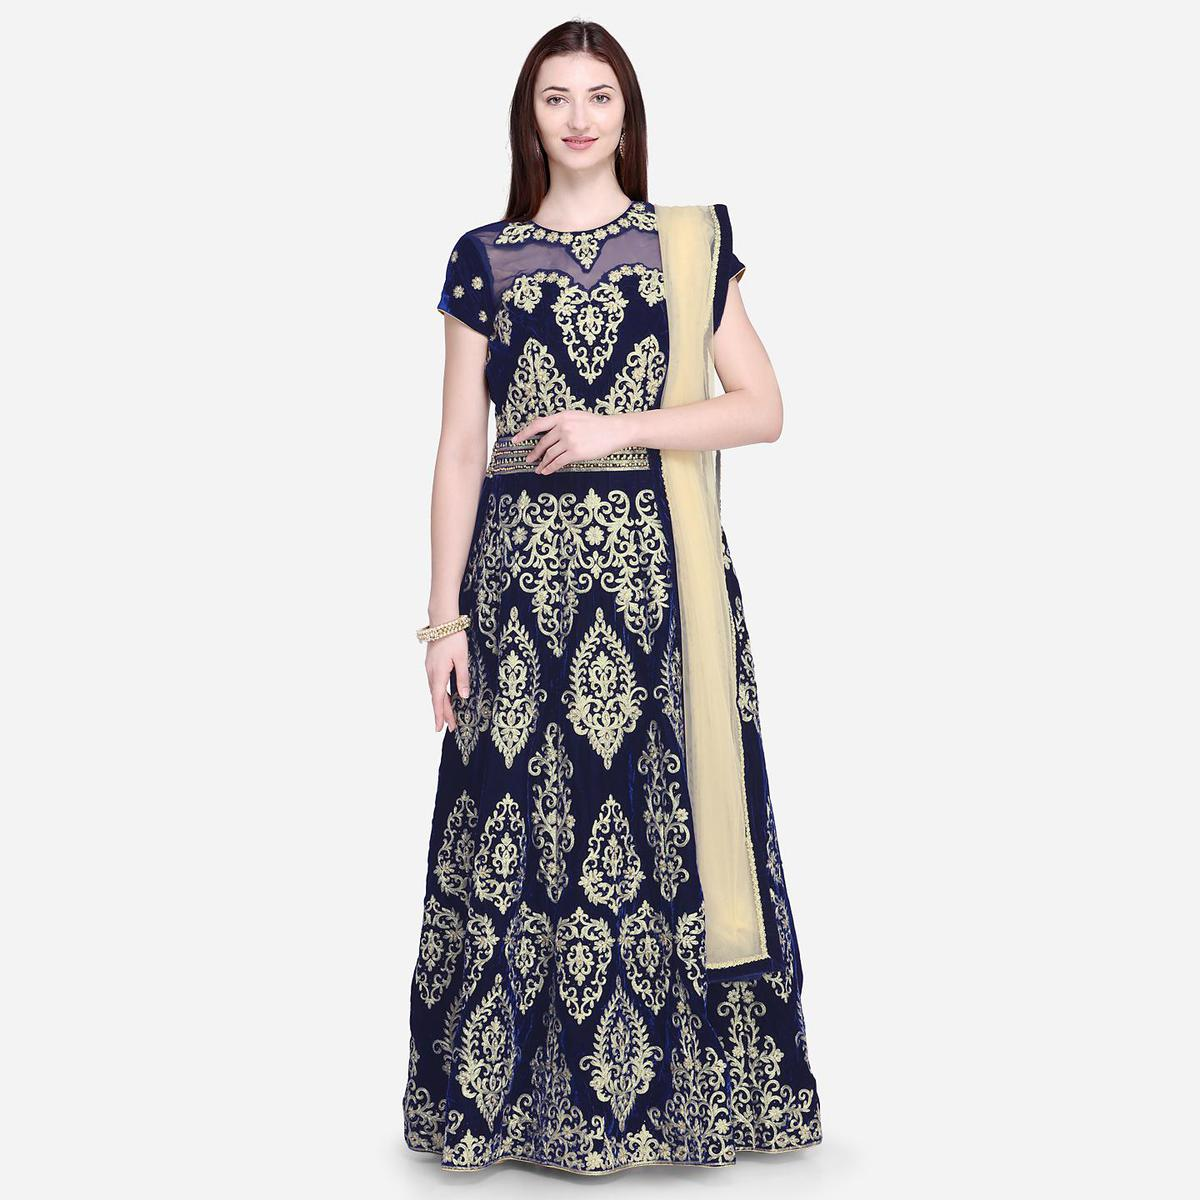 Stylee Lifestyle - Navy Blue Colored Party Wear Embroidered Velvet Anarkali Suit